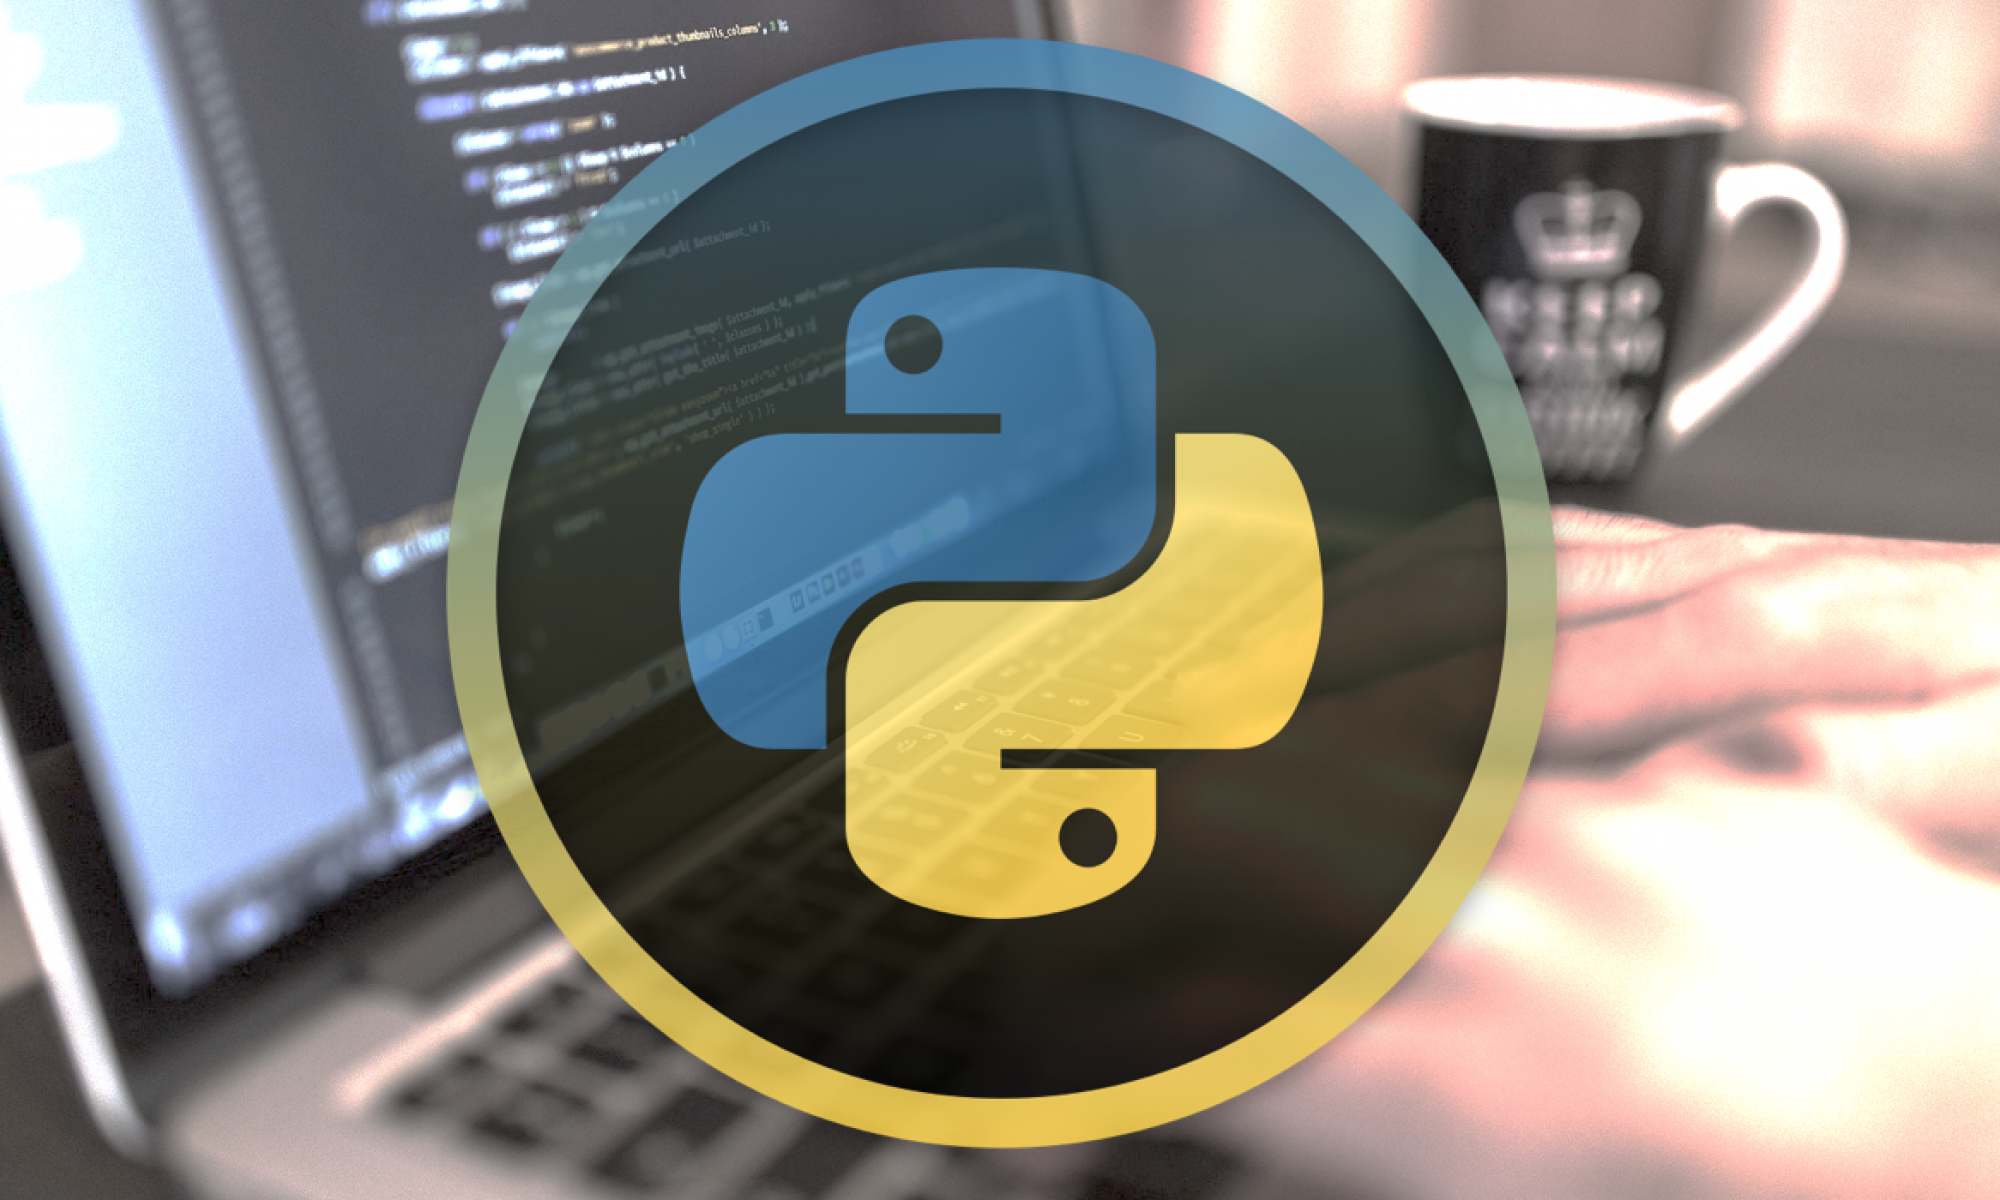 Learn Python with Rune